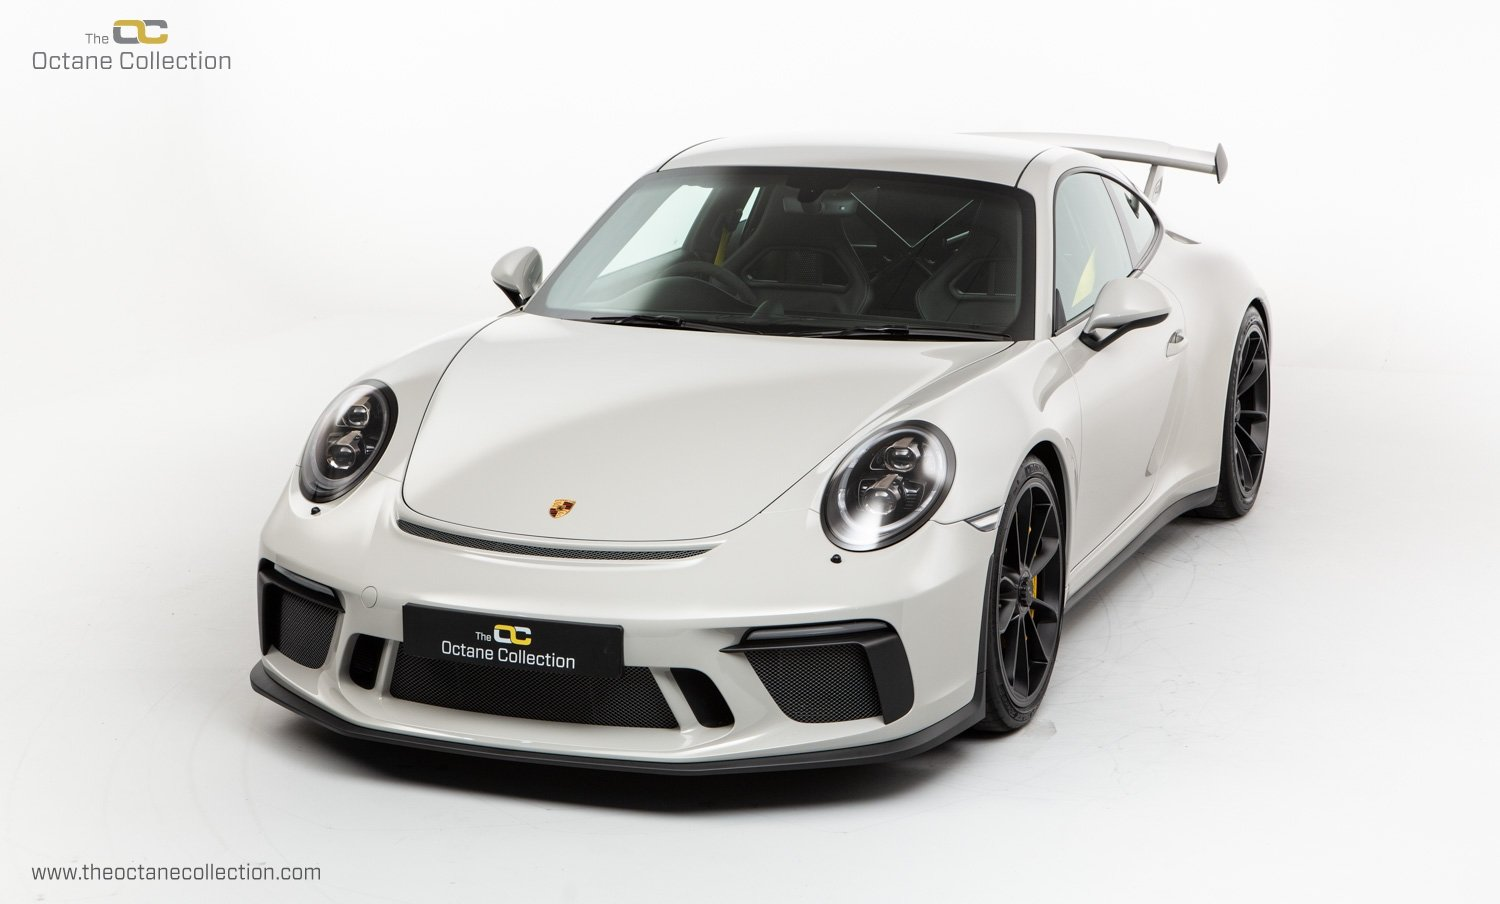 2017 PORSCHE 911 GT3 CLUBSPORT  For Sale (picture 3 of 7)